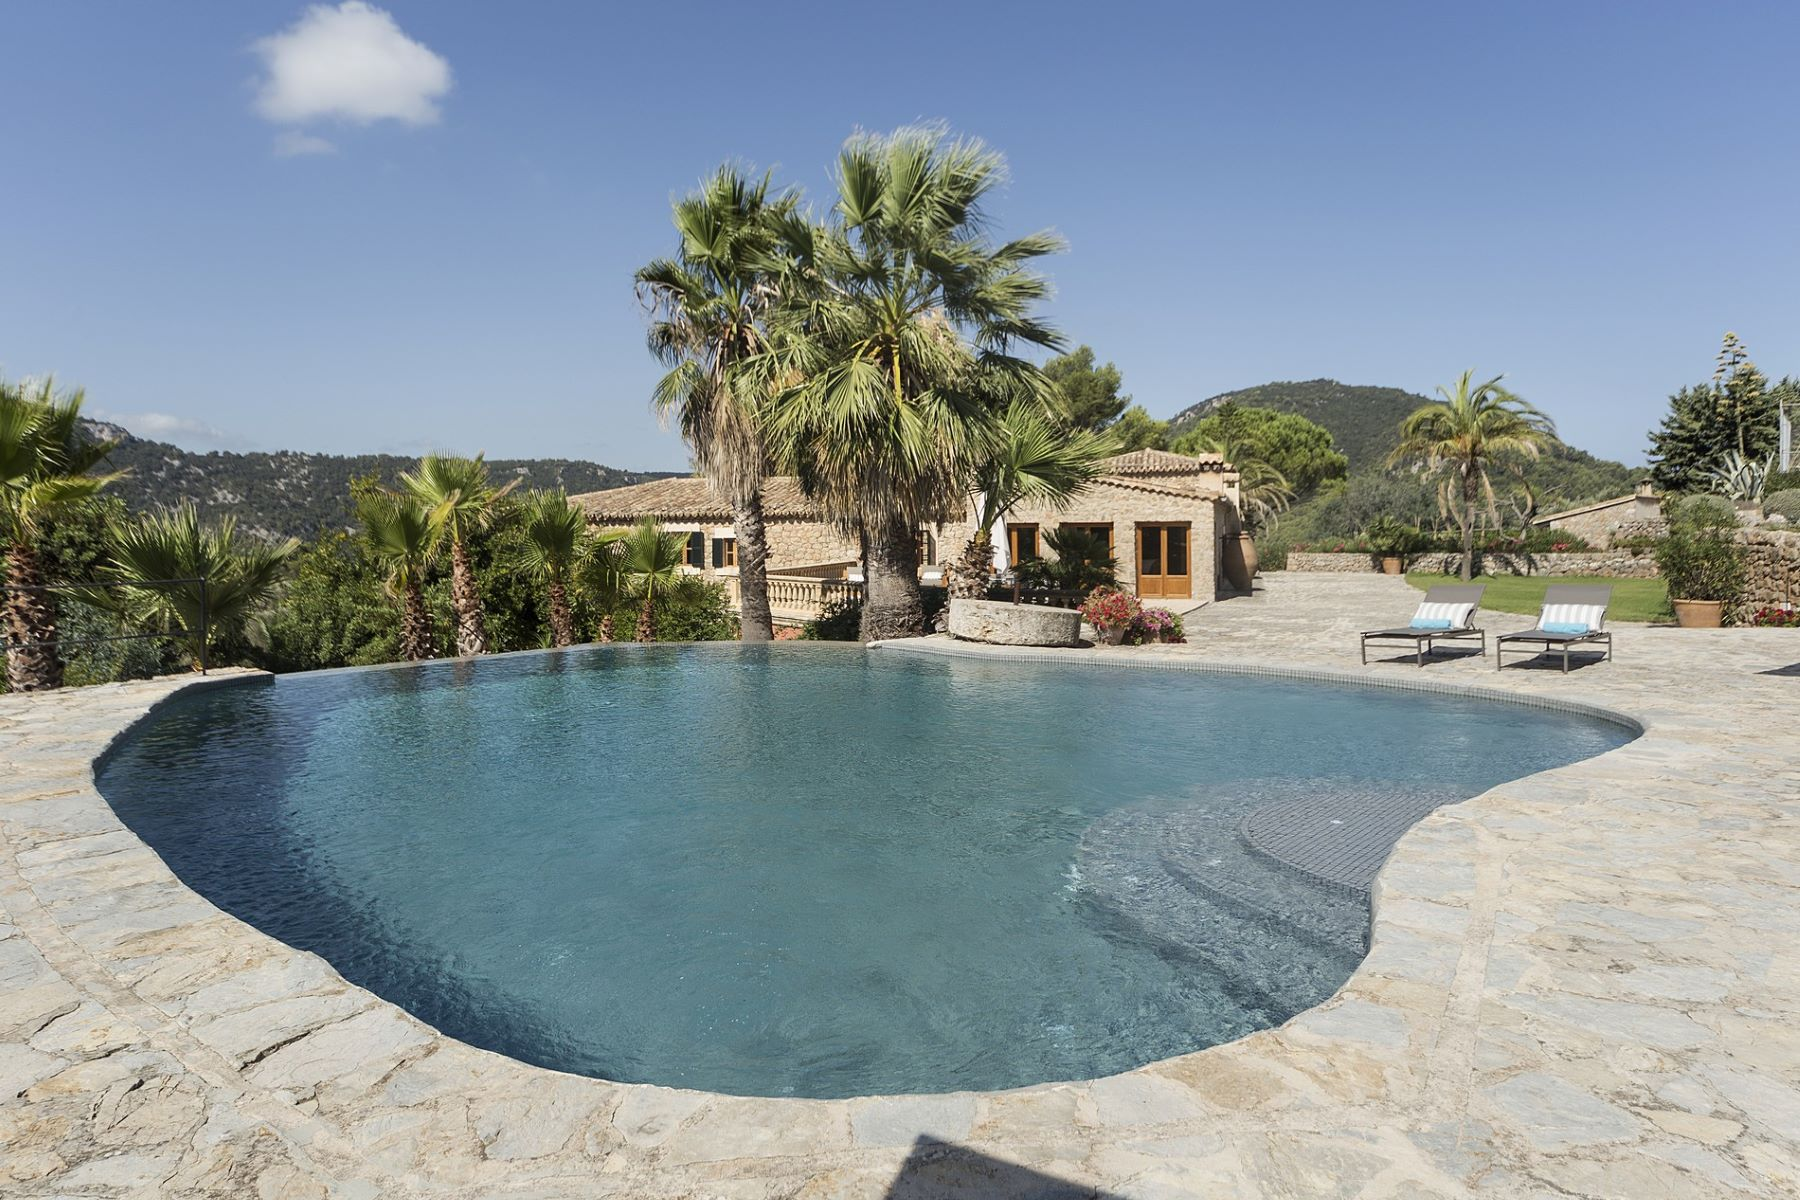 Single Family Home for Rent at Luxury Contry Estate in Valldemossa Other Balearic Islands, Balearic Islands, Spain